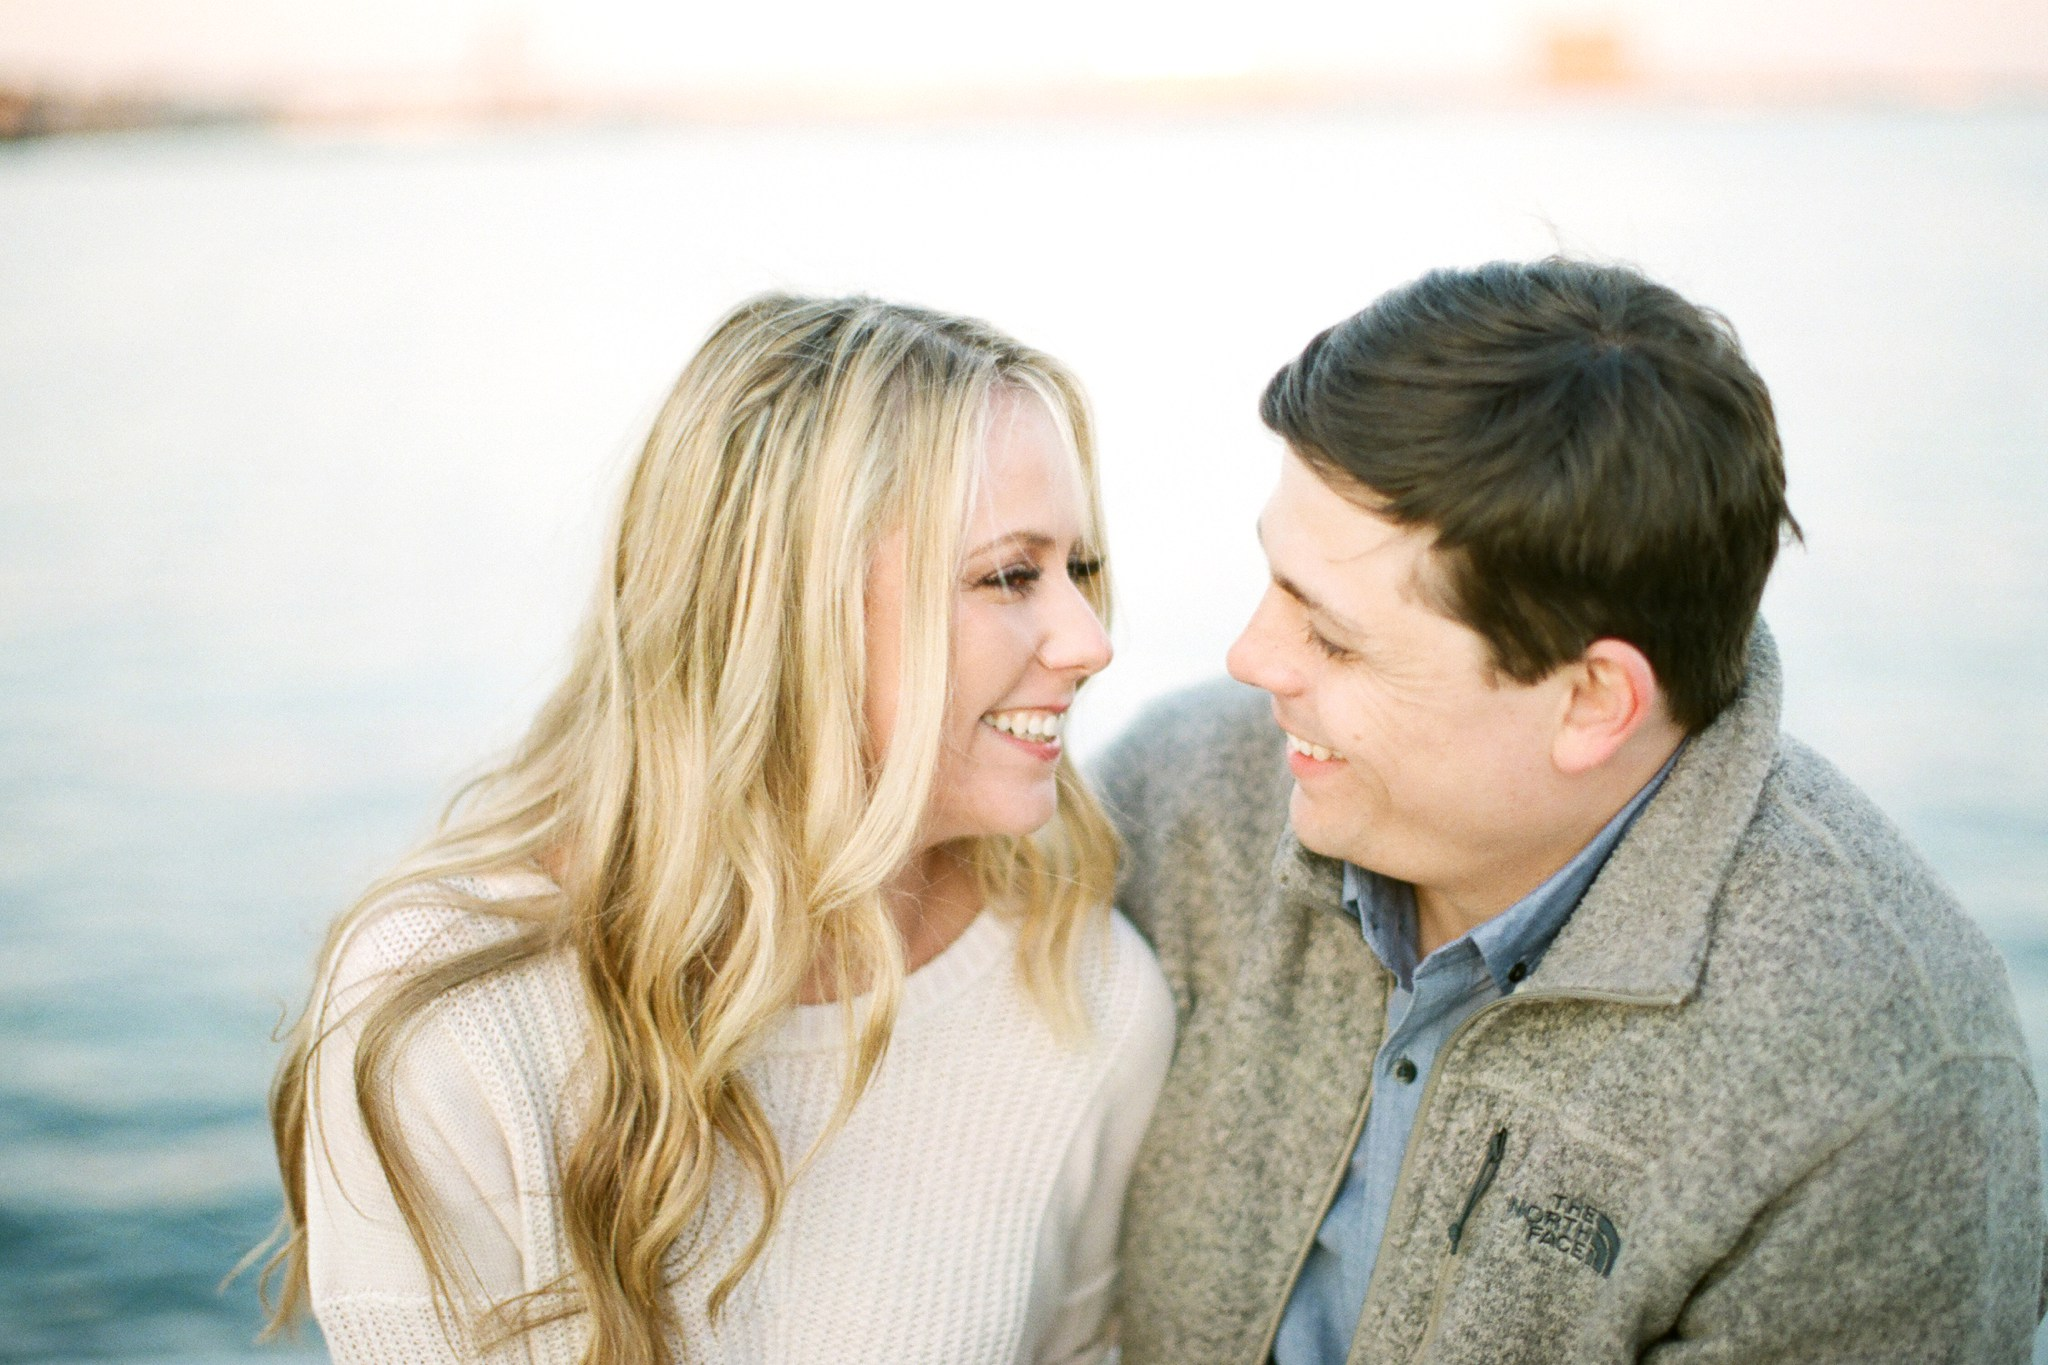 boston_engagement_session_deborah_zoe_00015.JPG